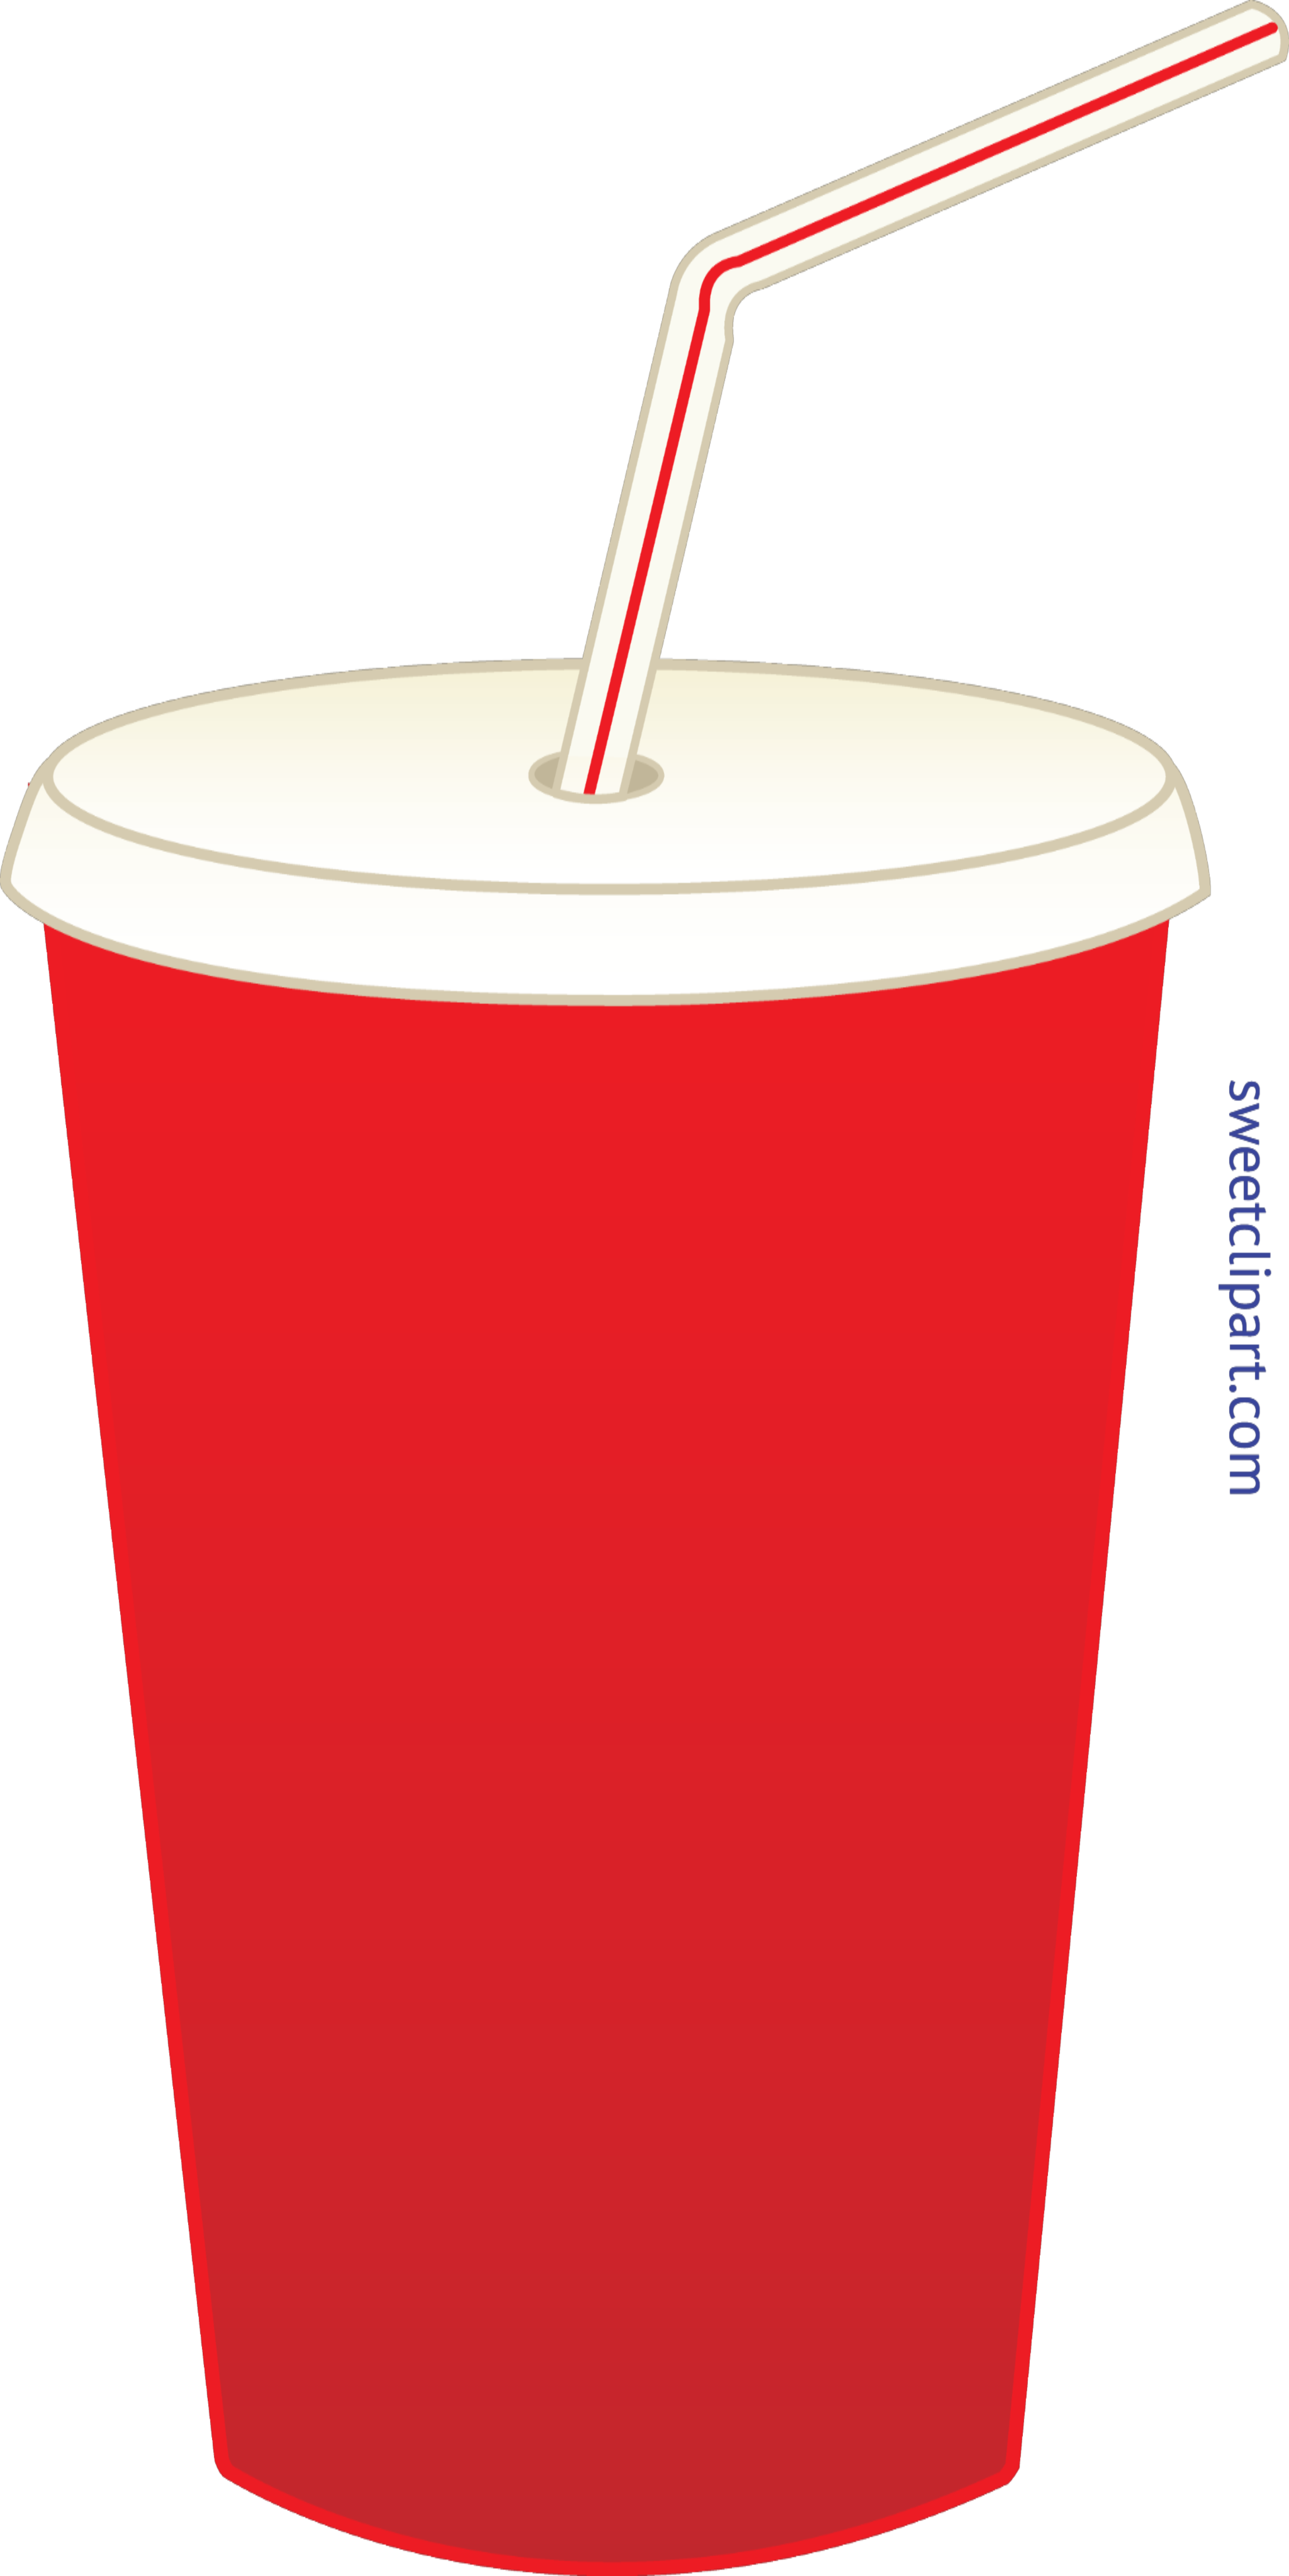 soda pop in cup clip art sweet clip art rh m sweetclipart com soda pop clip art soda clip art black and white